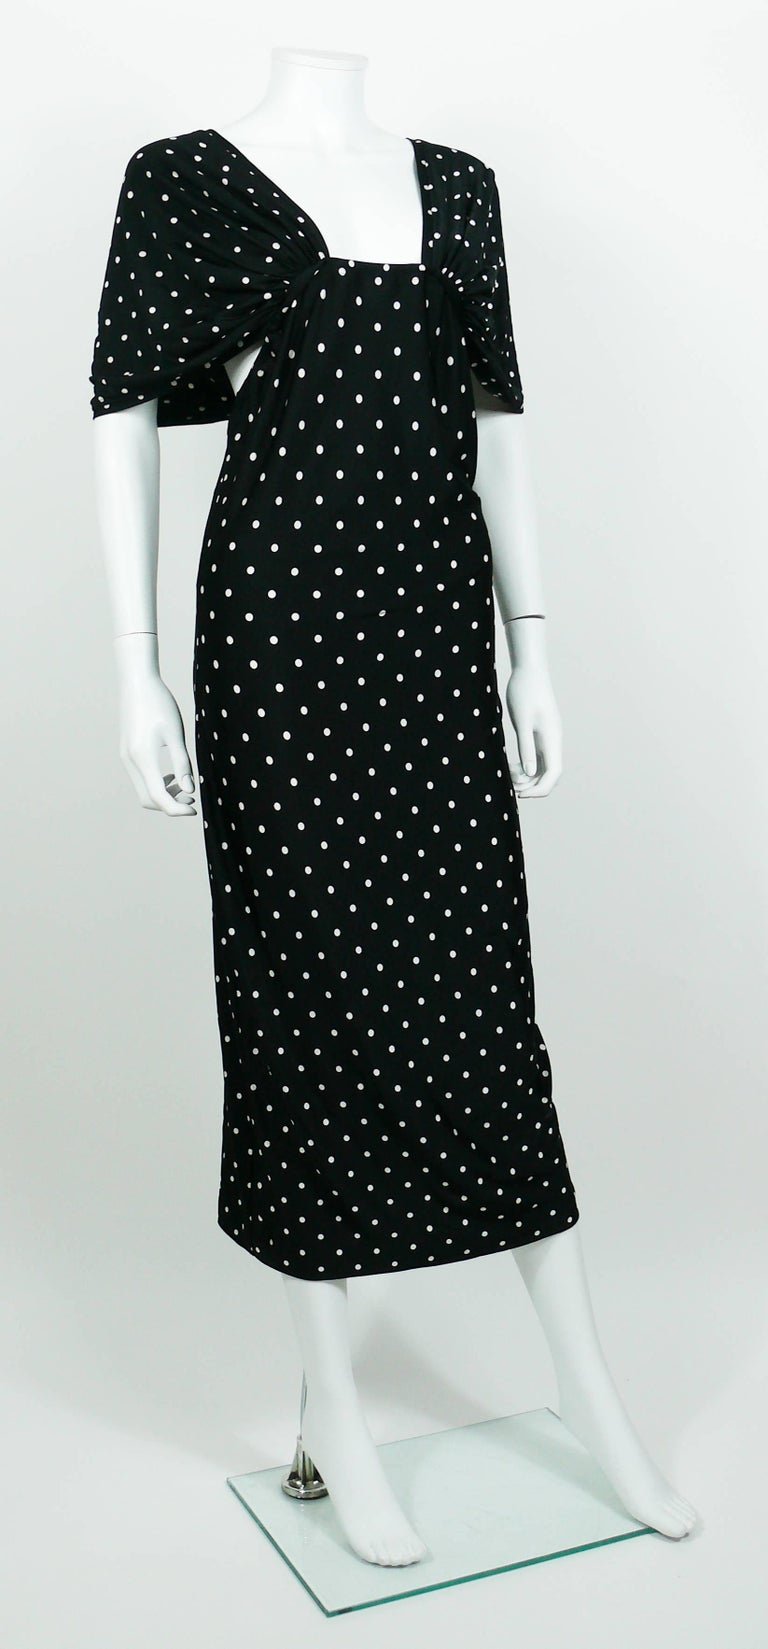 PATRICK KELLY vintage black and white polka dotted dress featuring